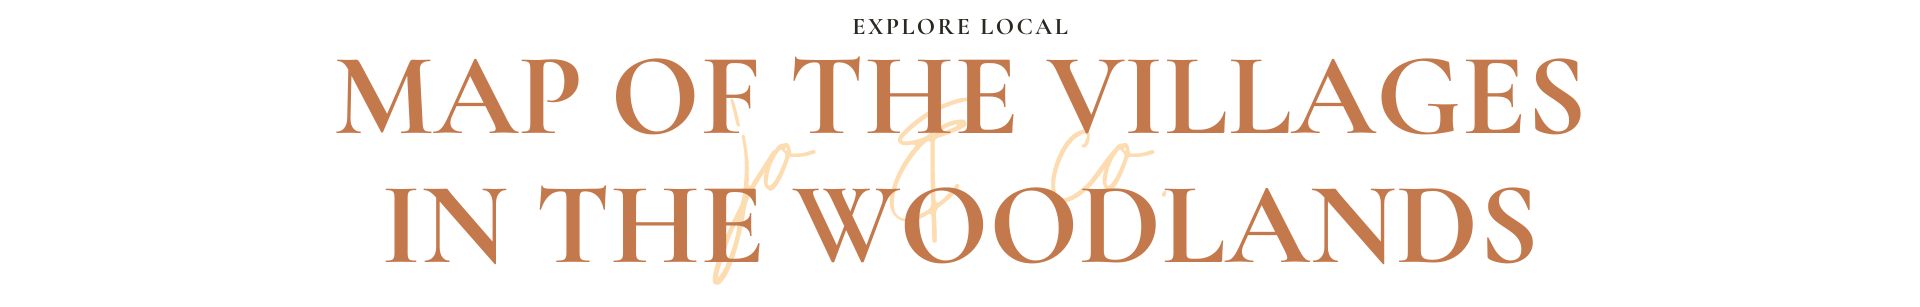 button for the woodlands map with villages